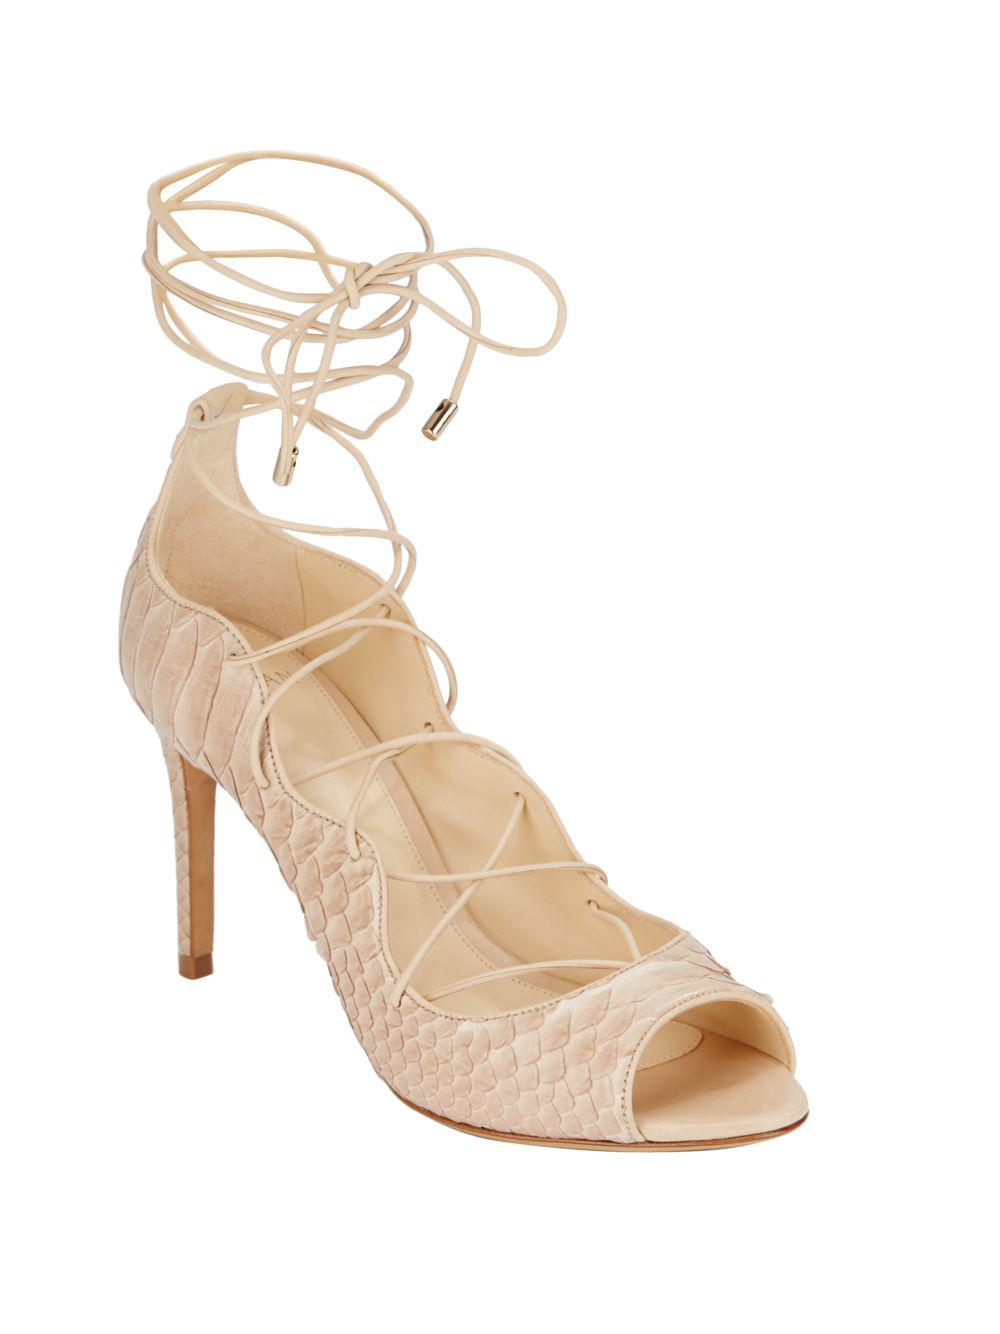 46833bb1462 Alexandre Birman Scalloped Python Lace-up Pumps in Natural - Lyst